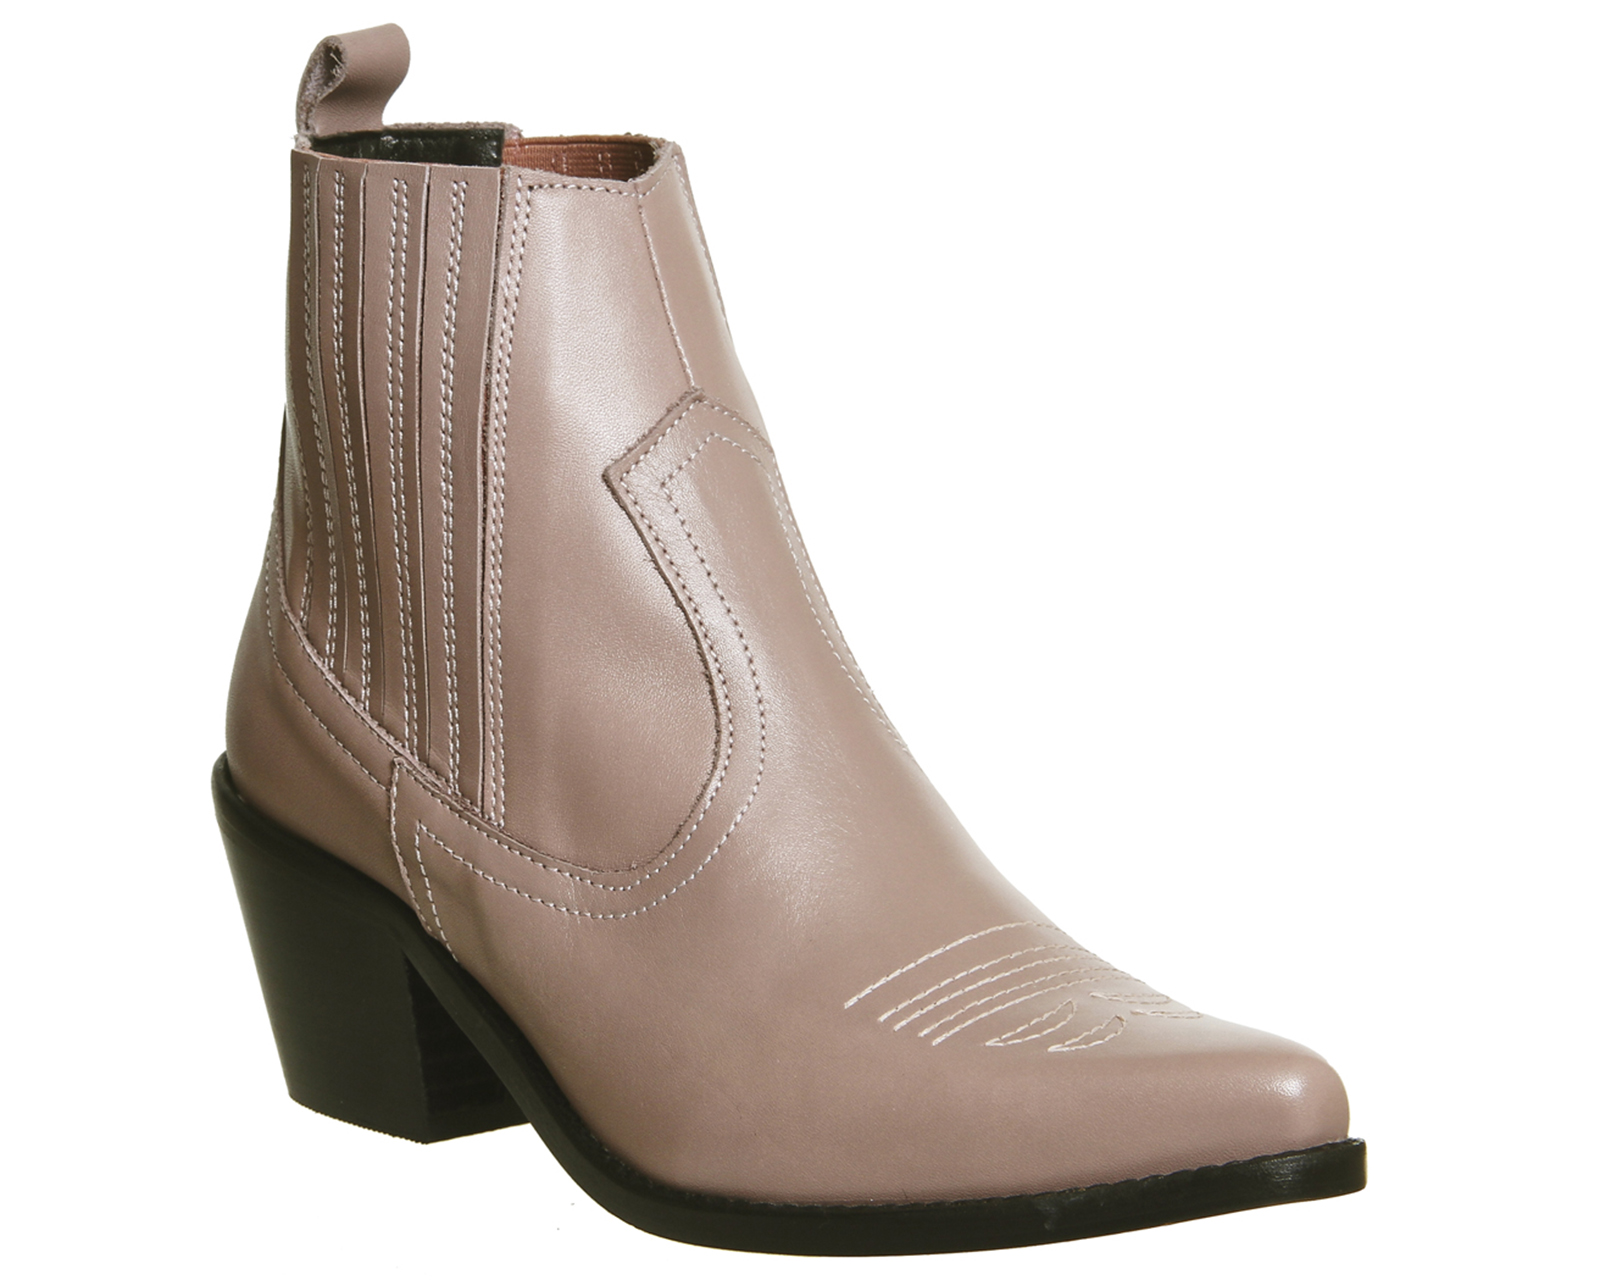 Western Ankle Boots | Woman Cowboy Boots | Ariat Womens Cowboy Boots